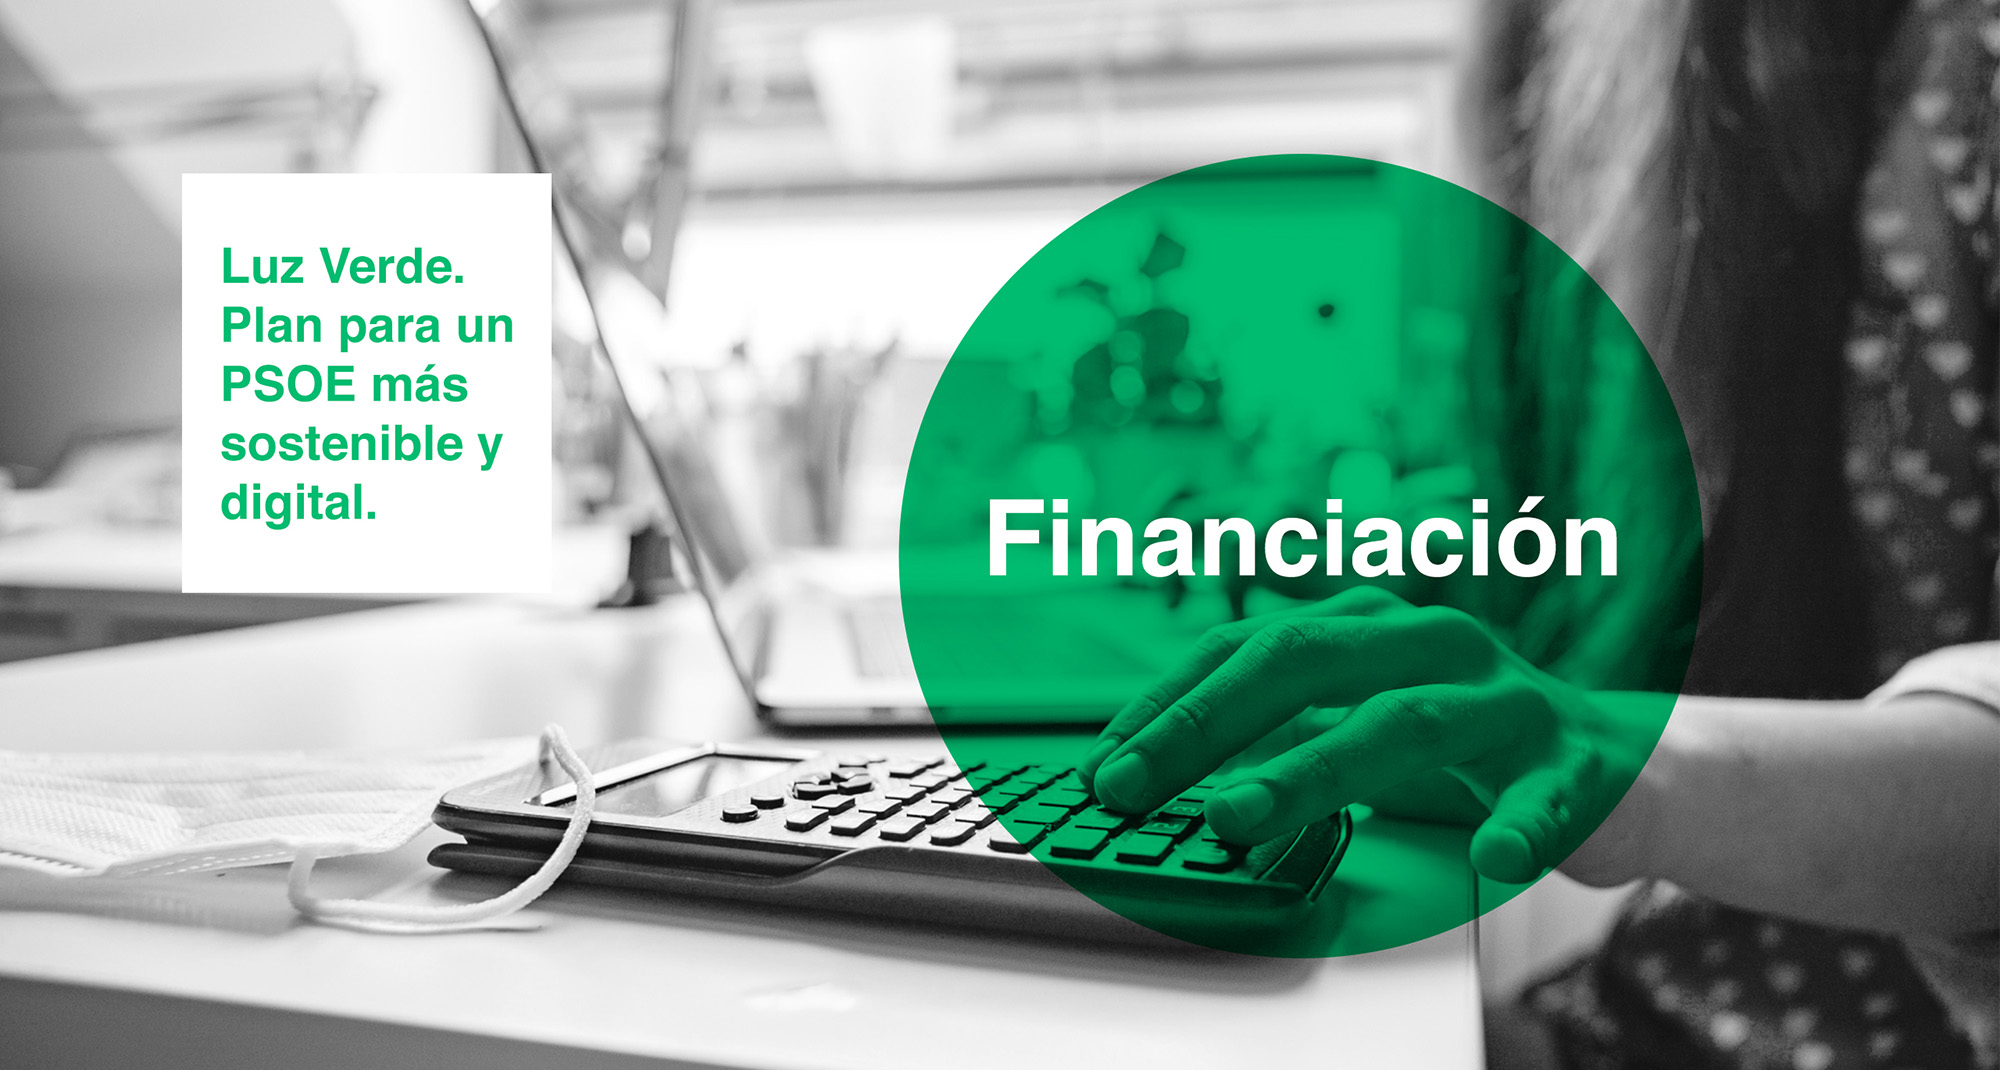 Financiación Plan de Transformación Ecológica y Digital